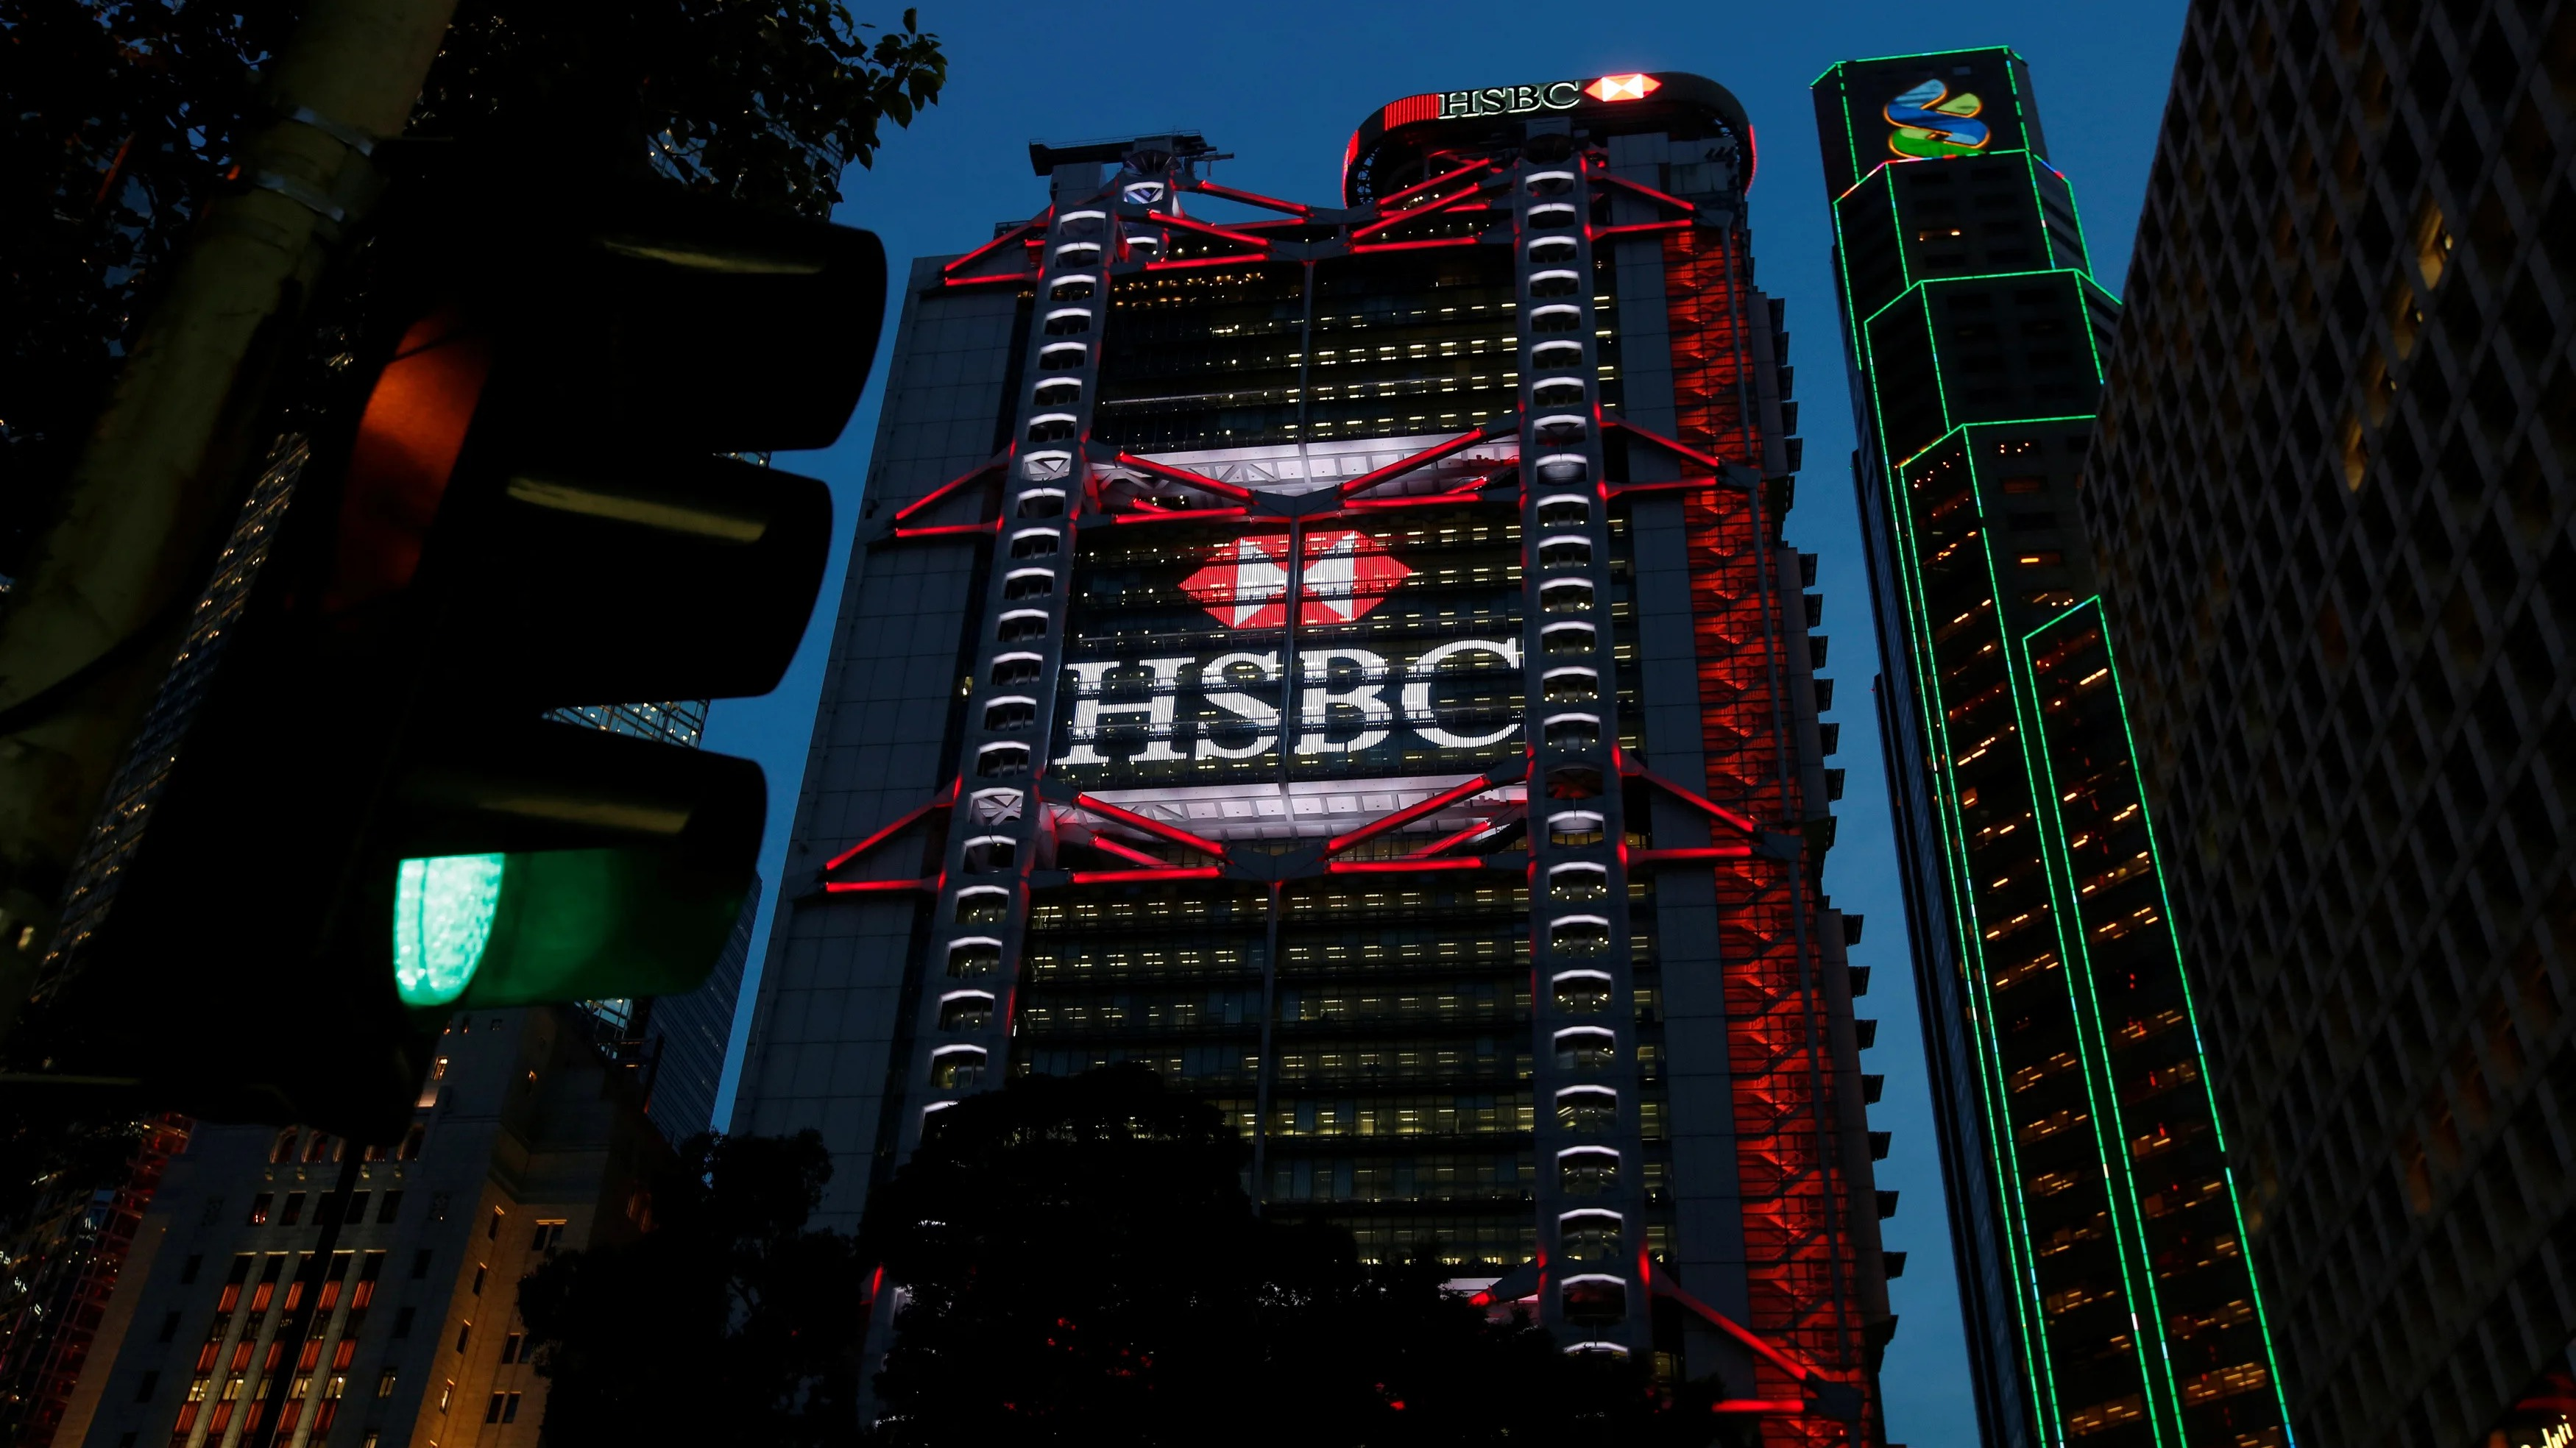 nikkei.com - Staff Writer - HSBC hires 100 wealth advisers in China